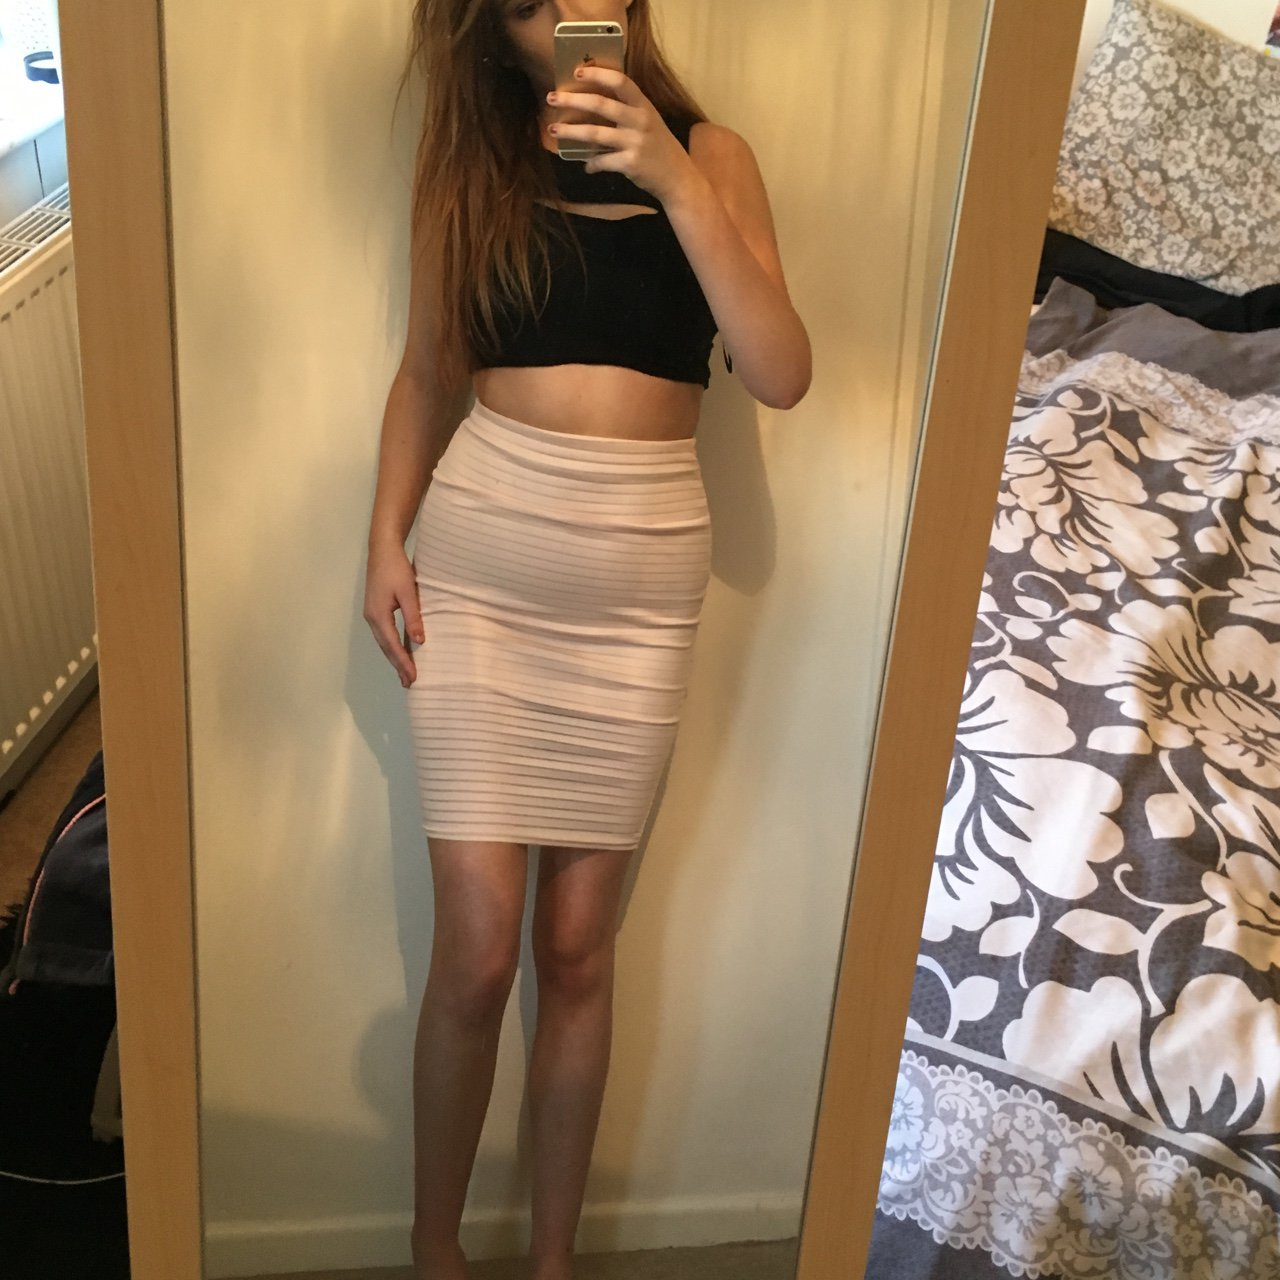 cb507b66a21f5 MISSGUIDED nude pink bodycon midi skirt